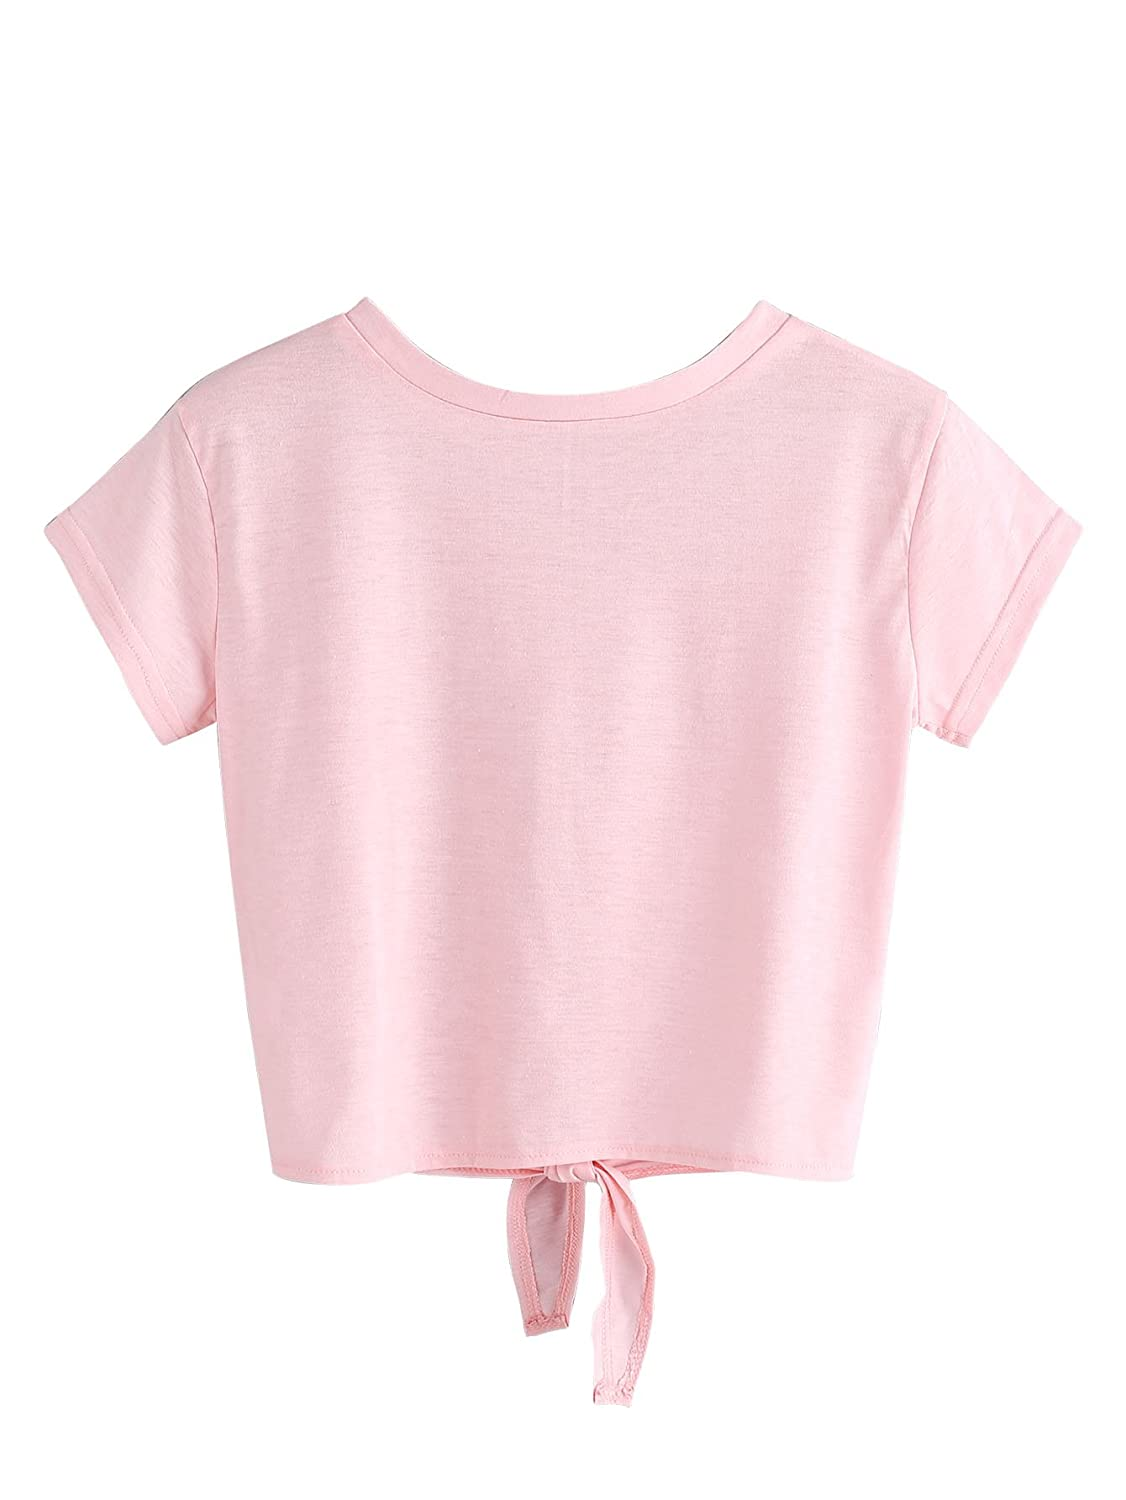 7d6841f370c91d MAKEMECHIC Women s Summer Crop Top Solid Short Sleeve Tie Front T-Shirt Top  at Amazon Women s Clothing store